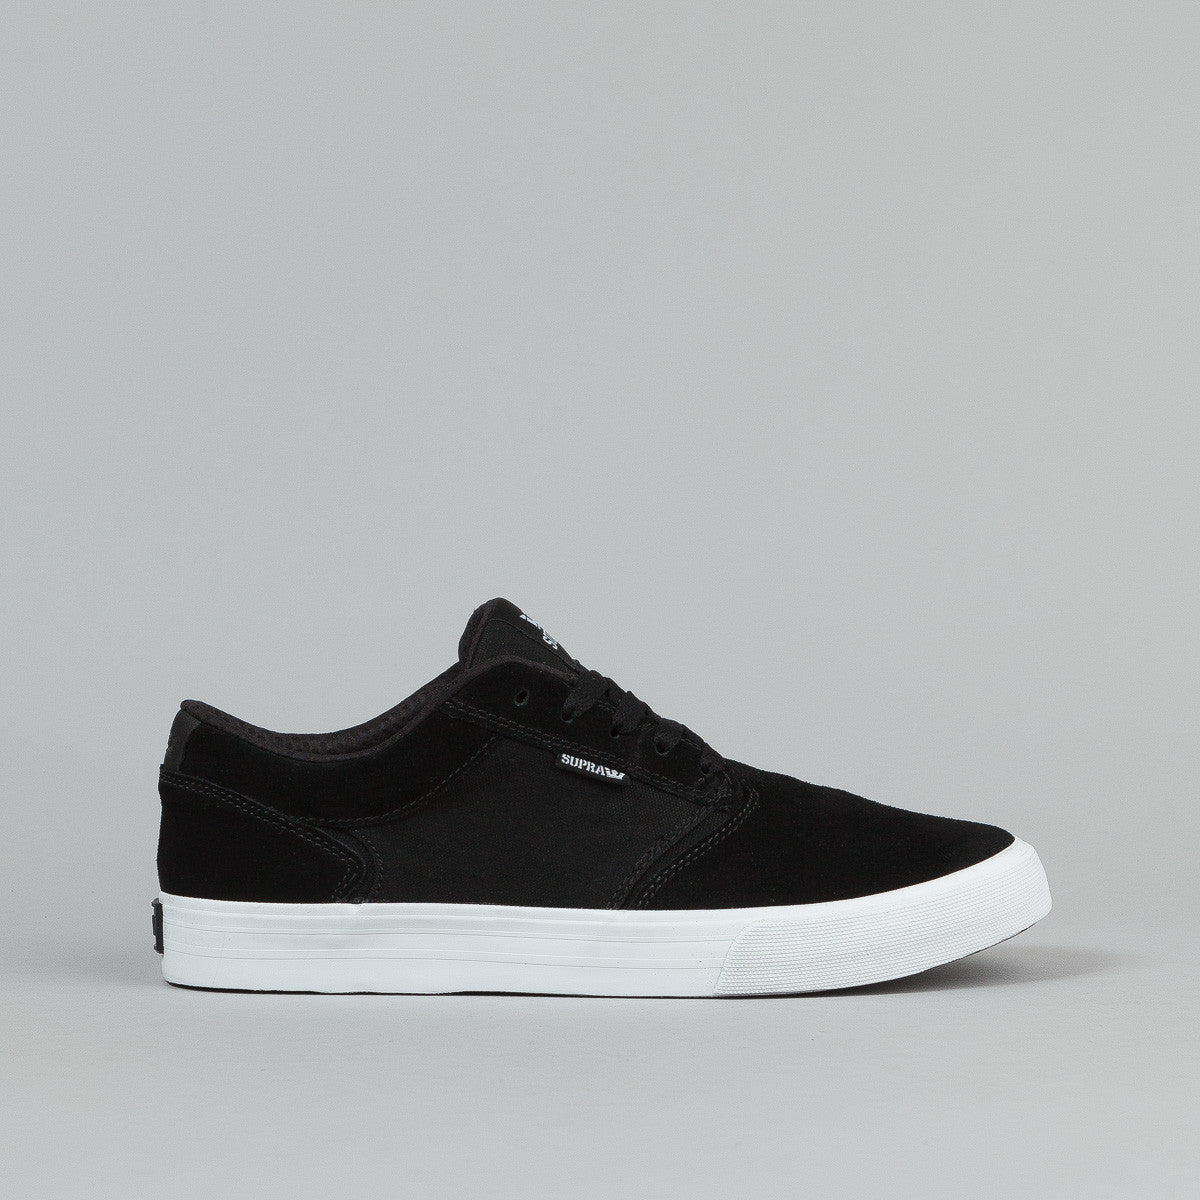 Supra Shredder Black - White